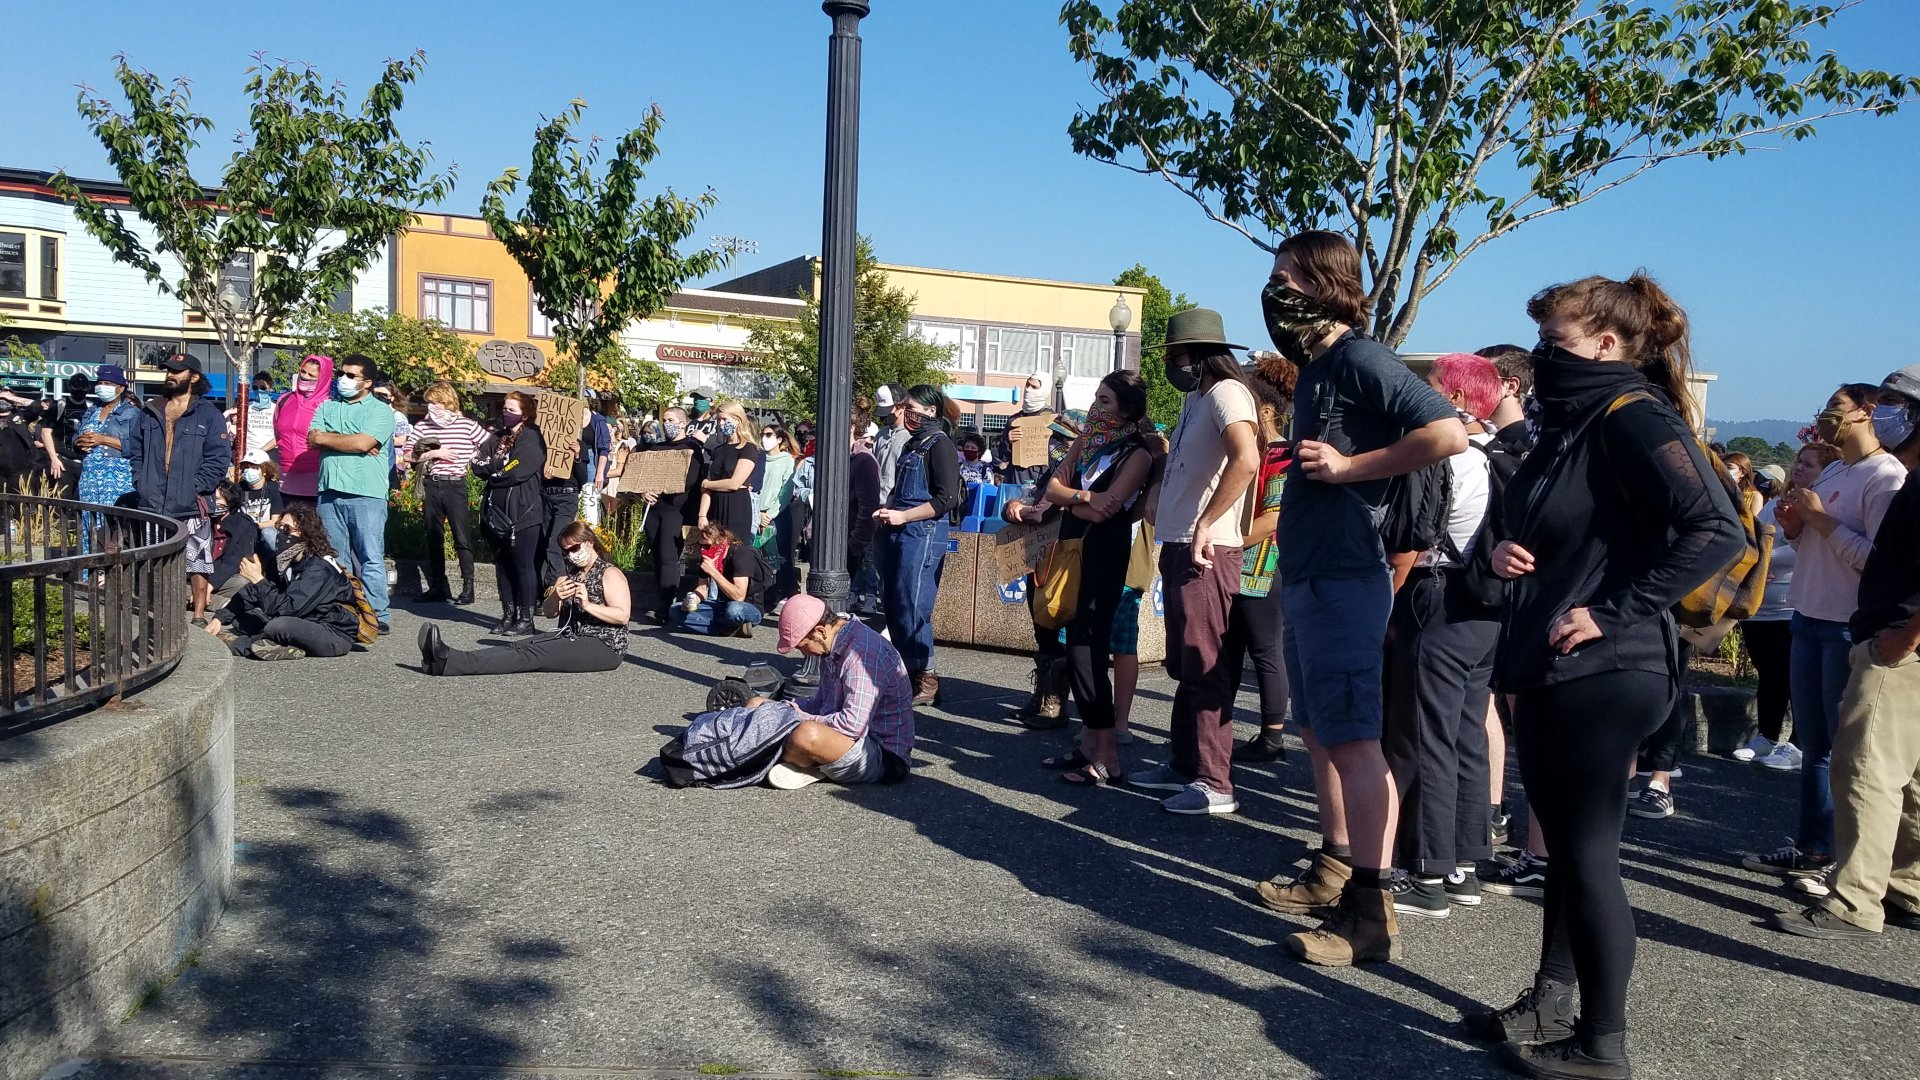 Protesters gather in the Arcata Plaza to speak out against police brutality and racism on June 1   Photo by Thomas Lal